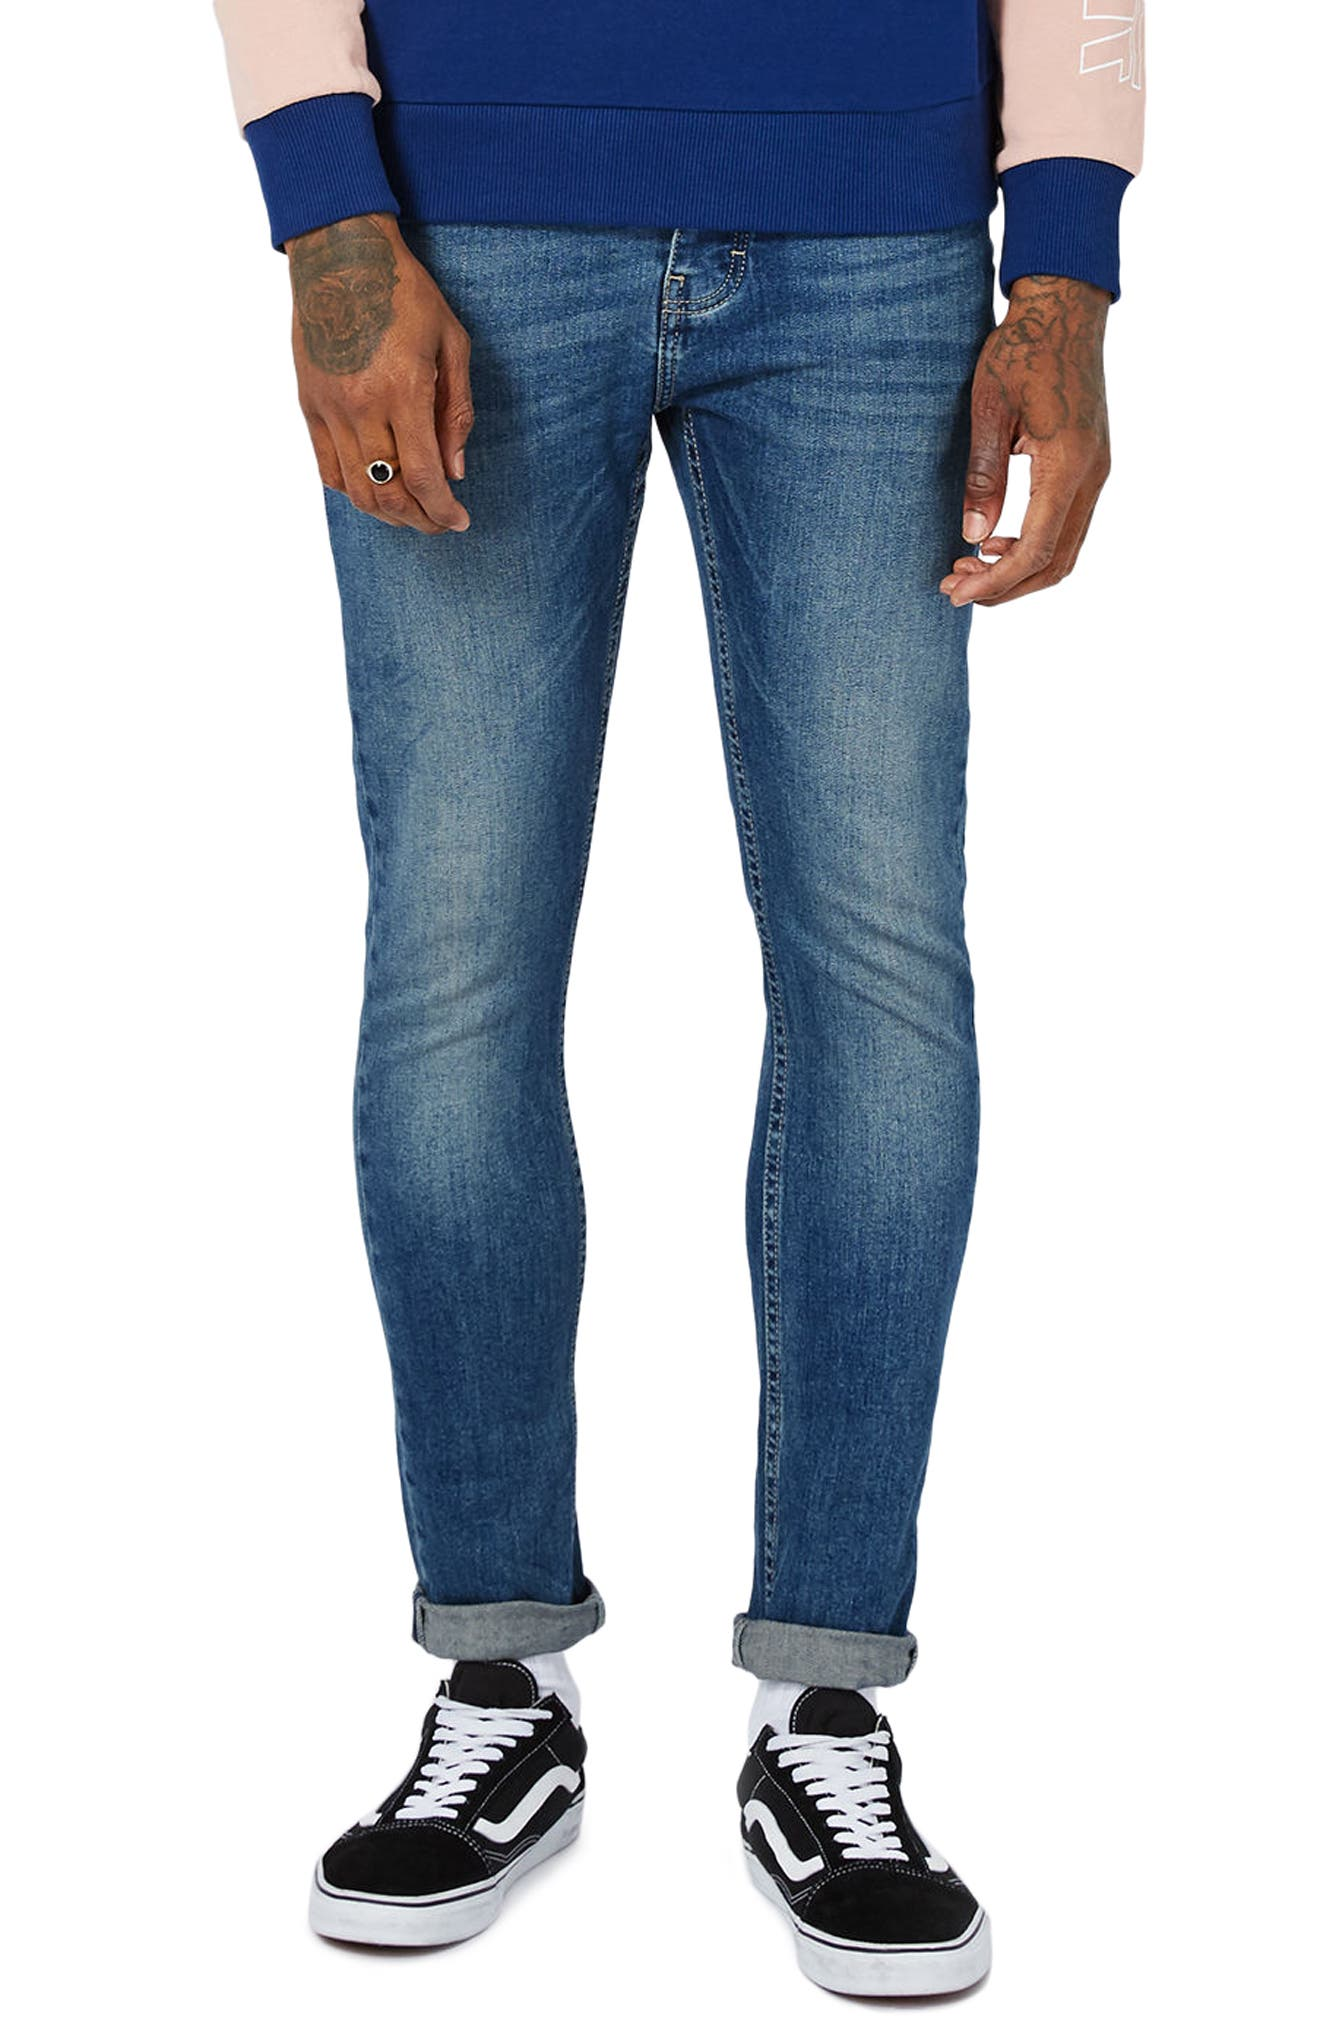 Stretch Skinny Jeans,                             Main thumbnail 1, color,                             420